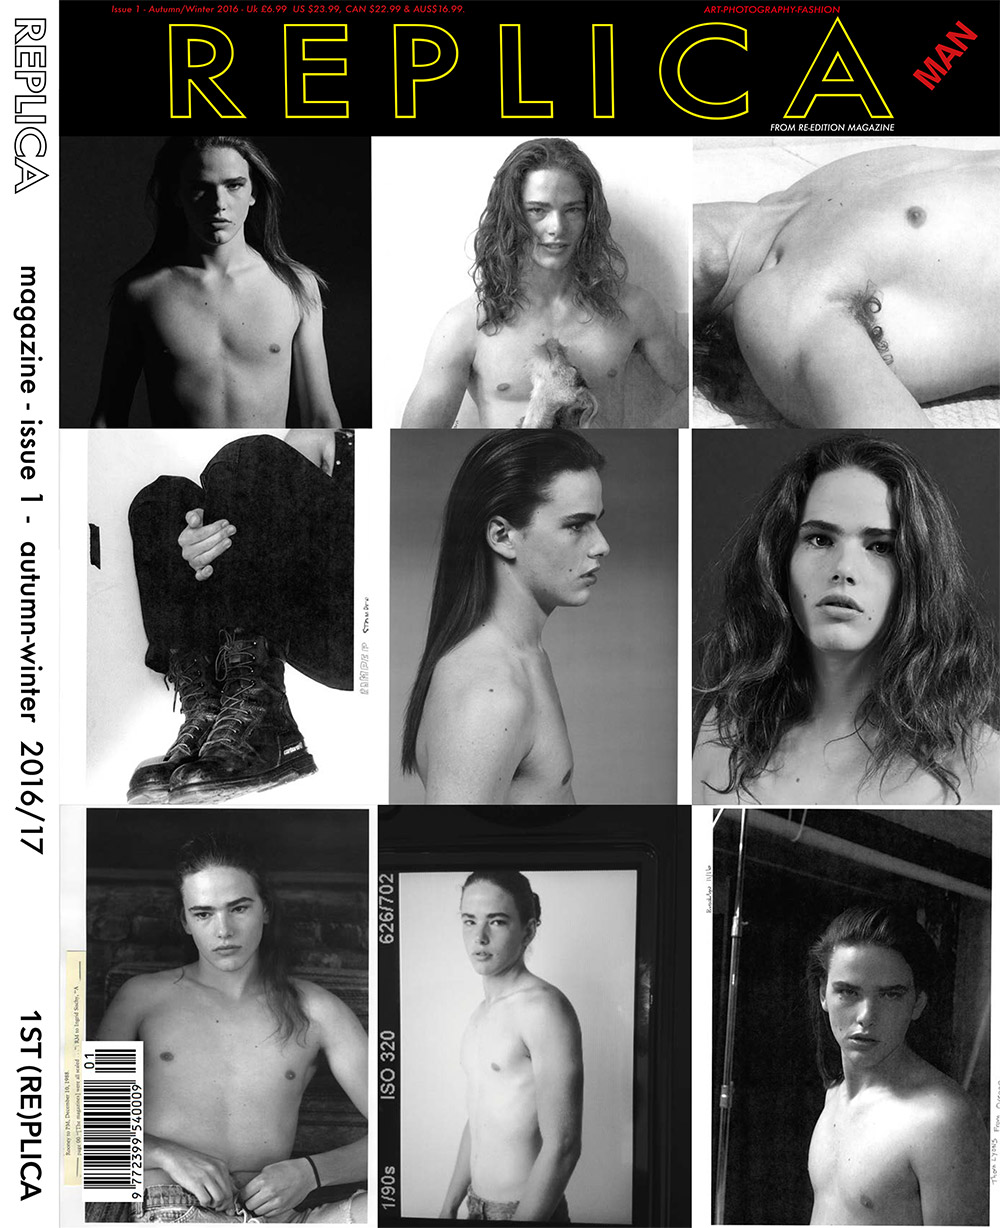 Collier Schorr for Replica Magazine